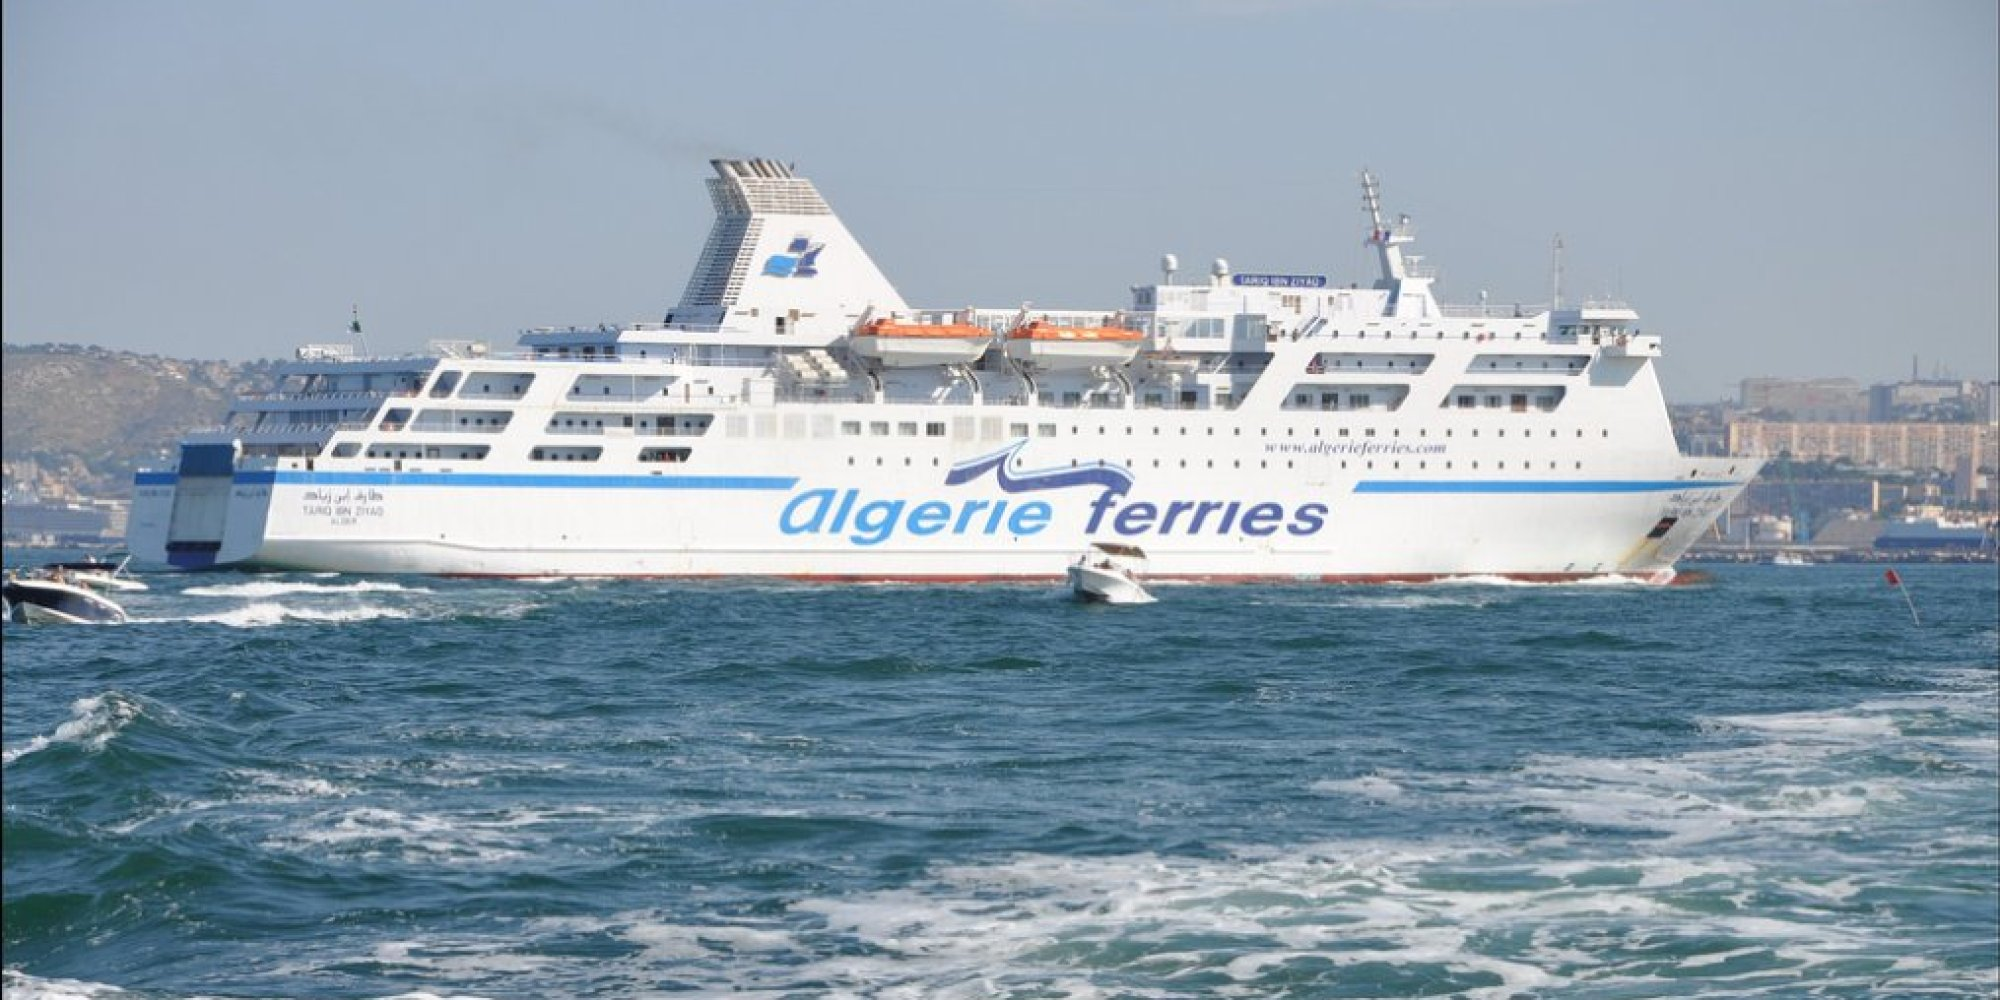 Alg rie ferries attribue la construction d 39 un car ferry - Port de marseille pour aller en algerie ...